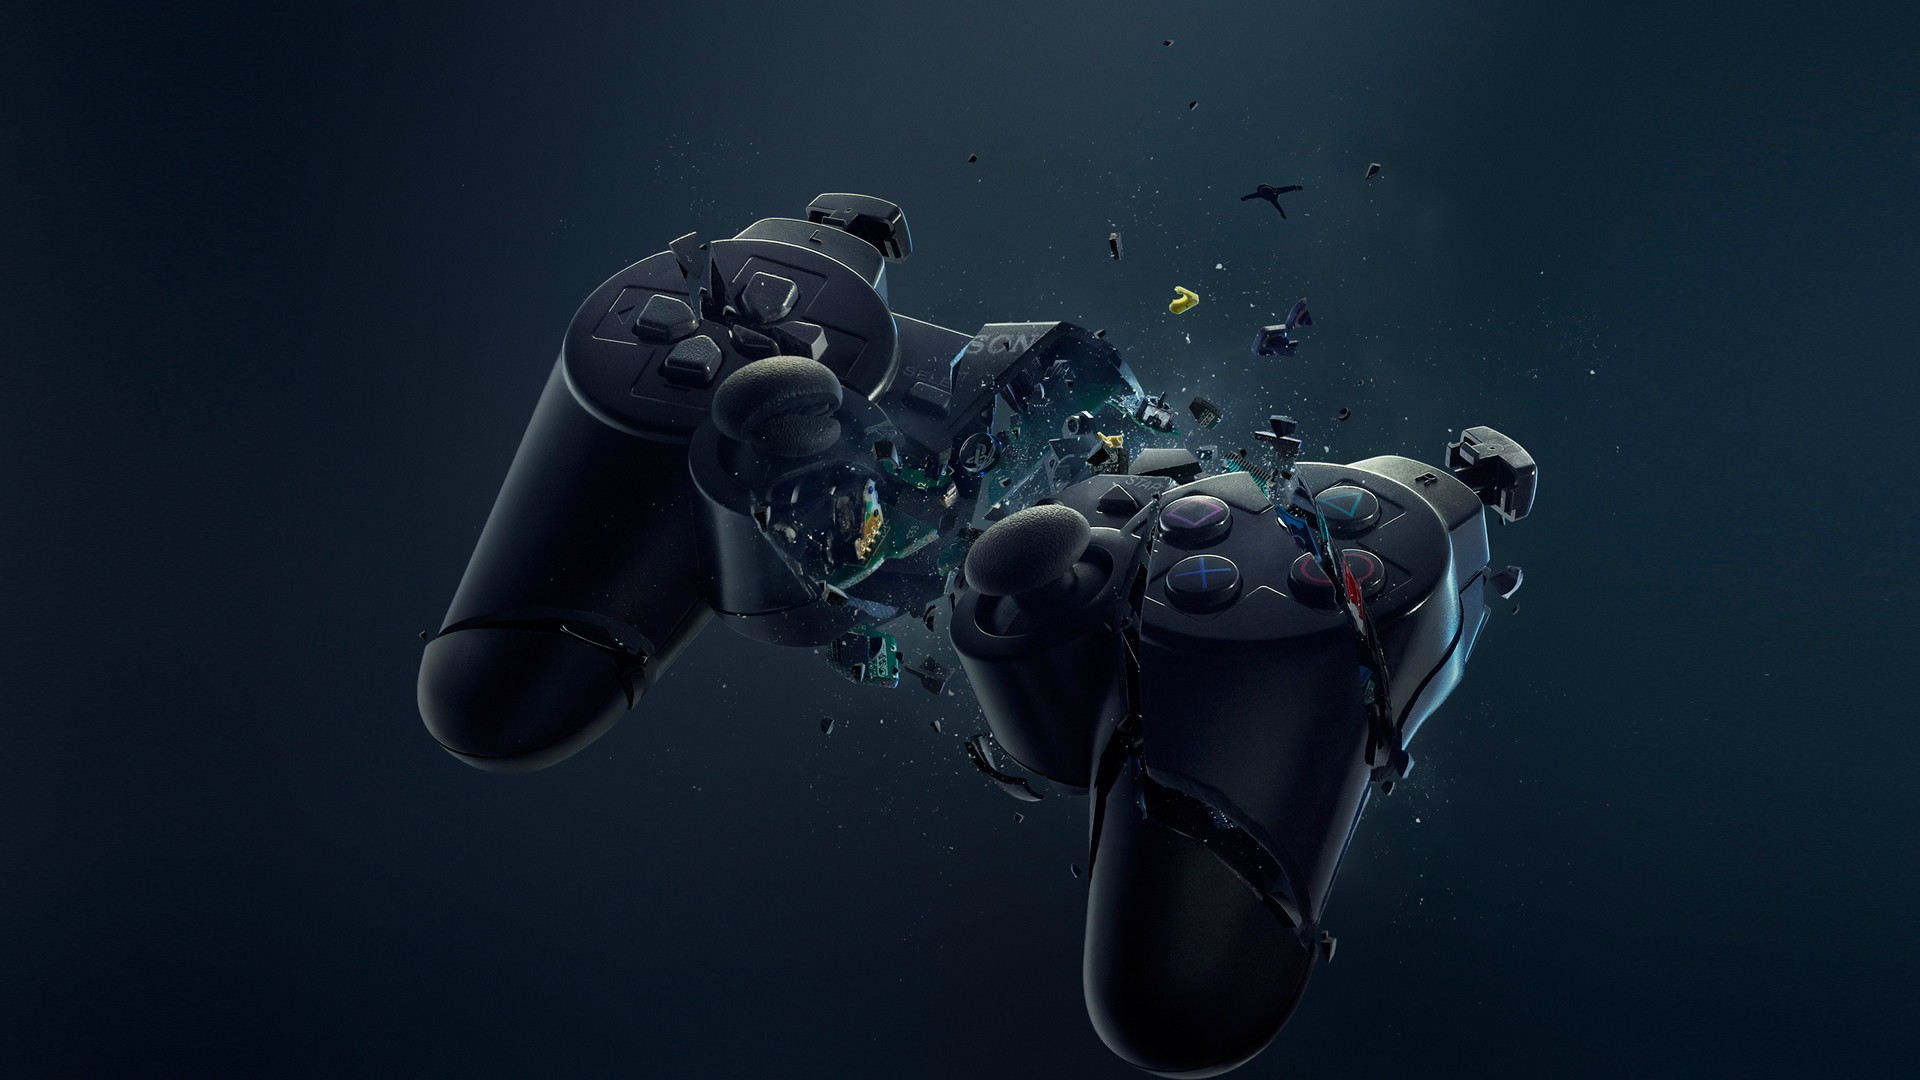 gaming backgrounds hd - photo #7